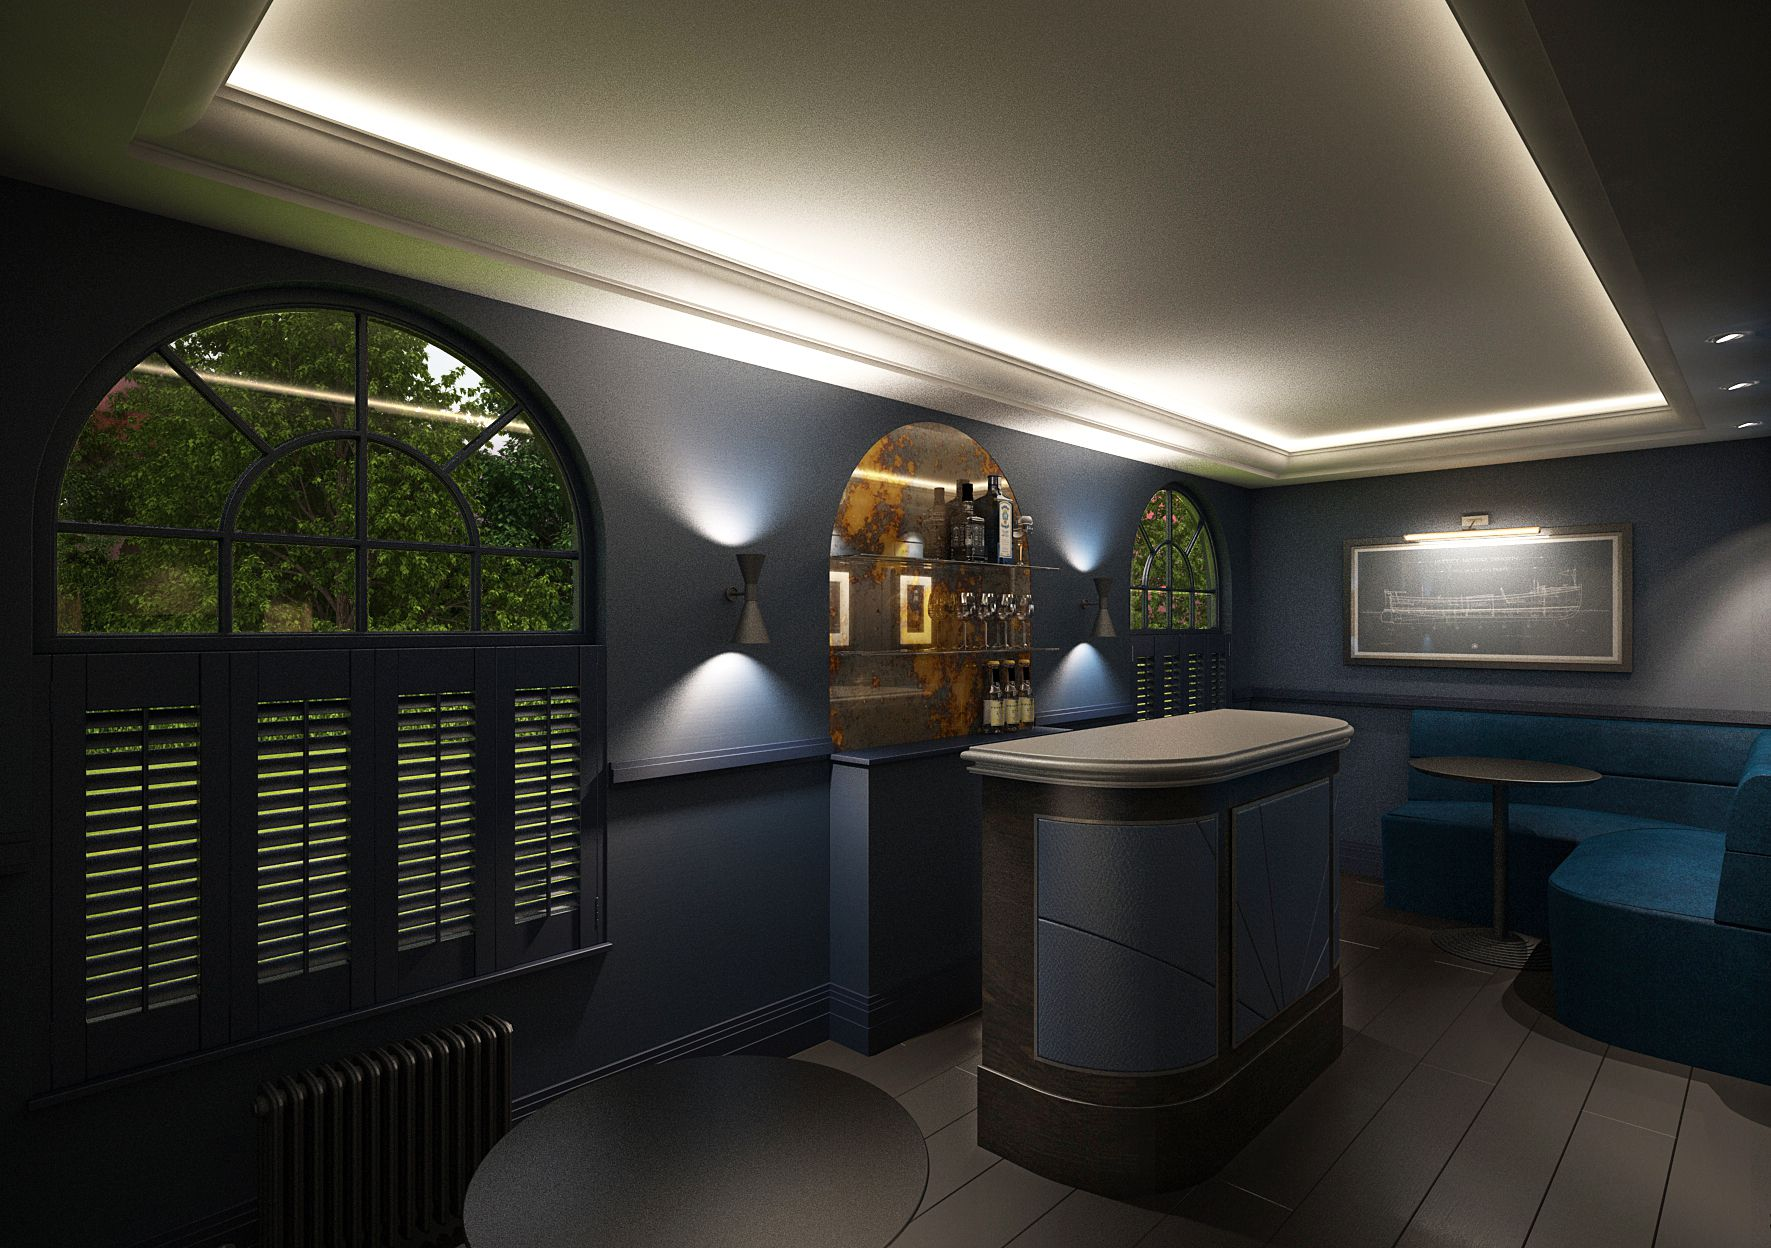 Current Project. Art Deco inspired Bar for private residence. Stereo Interiors Sacarmento Wall covering & Fired Earth Carbon Blue Walls. Antique Bronze Metal Detailing.